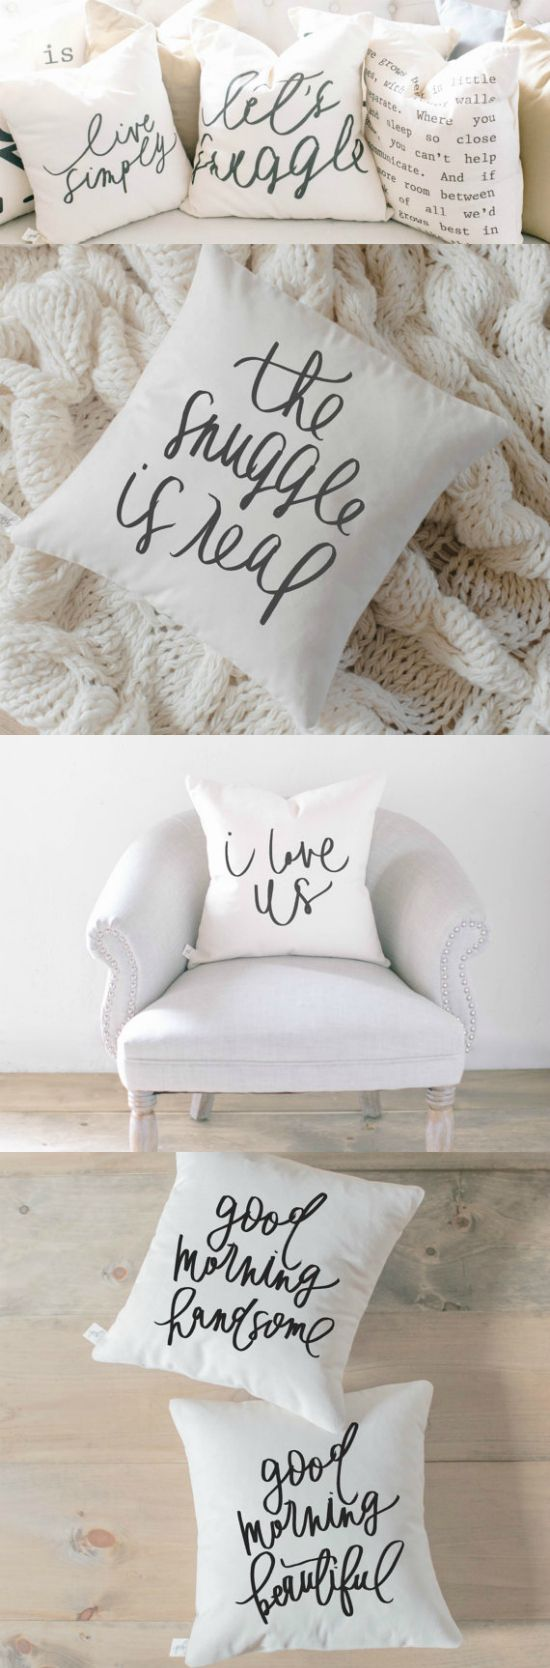 Confession: I Have A Throw Pillow Addiction. And THIS Shop Has The CUTEST Throw  Pillows EVER! Theyu0027re Perfect For Your Bed In Your Bedroom Or The Couch In  ...